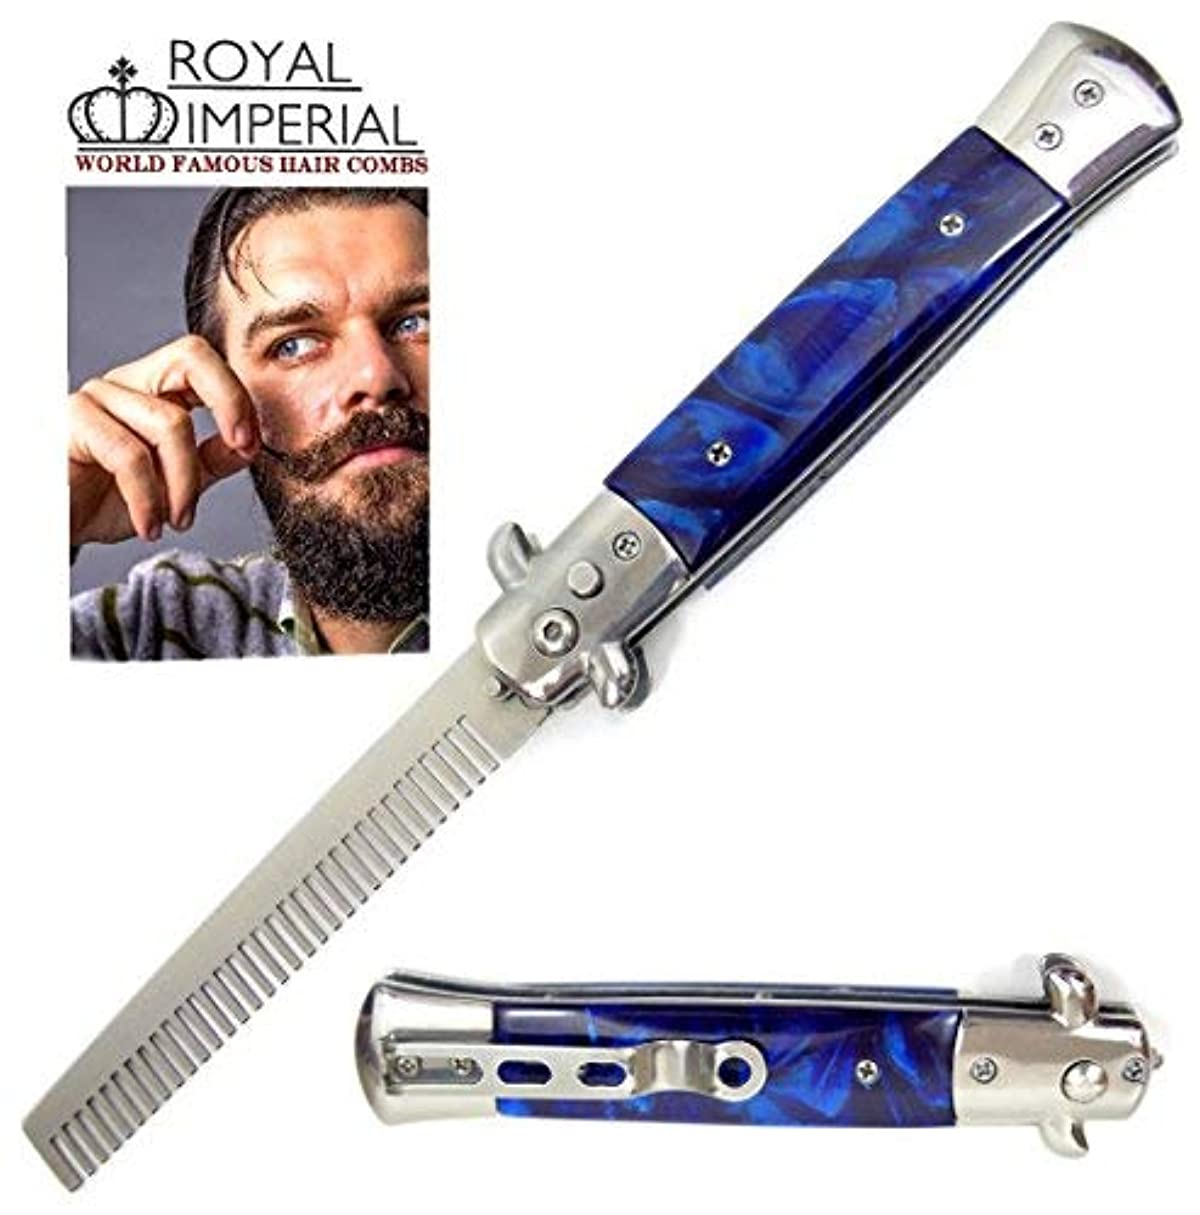 応用逆さまにの間にRoyal Imperial Metal Switchblade Pocket Folding Flick Hair Comb For Beard, Mustache, Head BLUE CYCLONE Handle ~ INCLUDES Beard Fact Wallet Book ~ Nicer Than Butterfly Knife Trainer [並行輸入品]